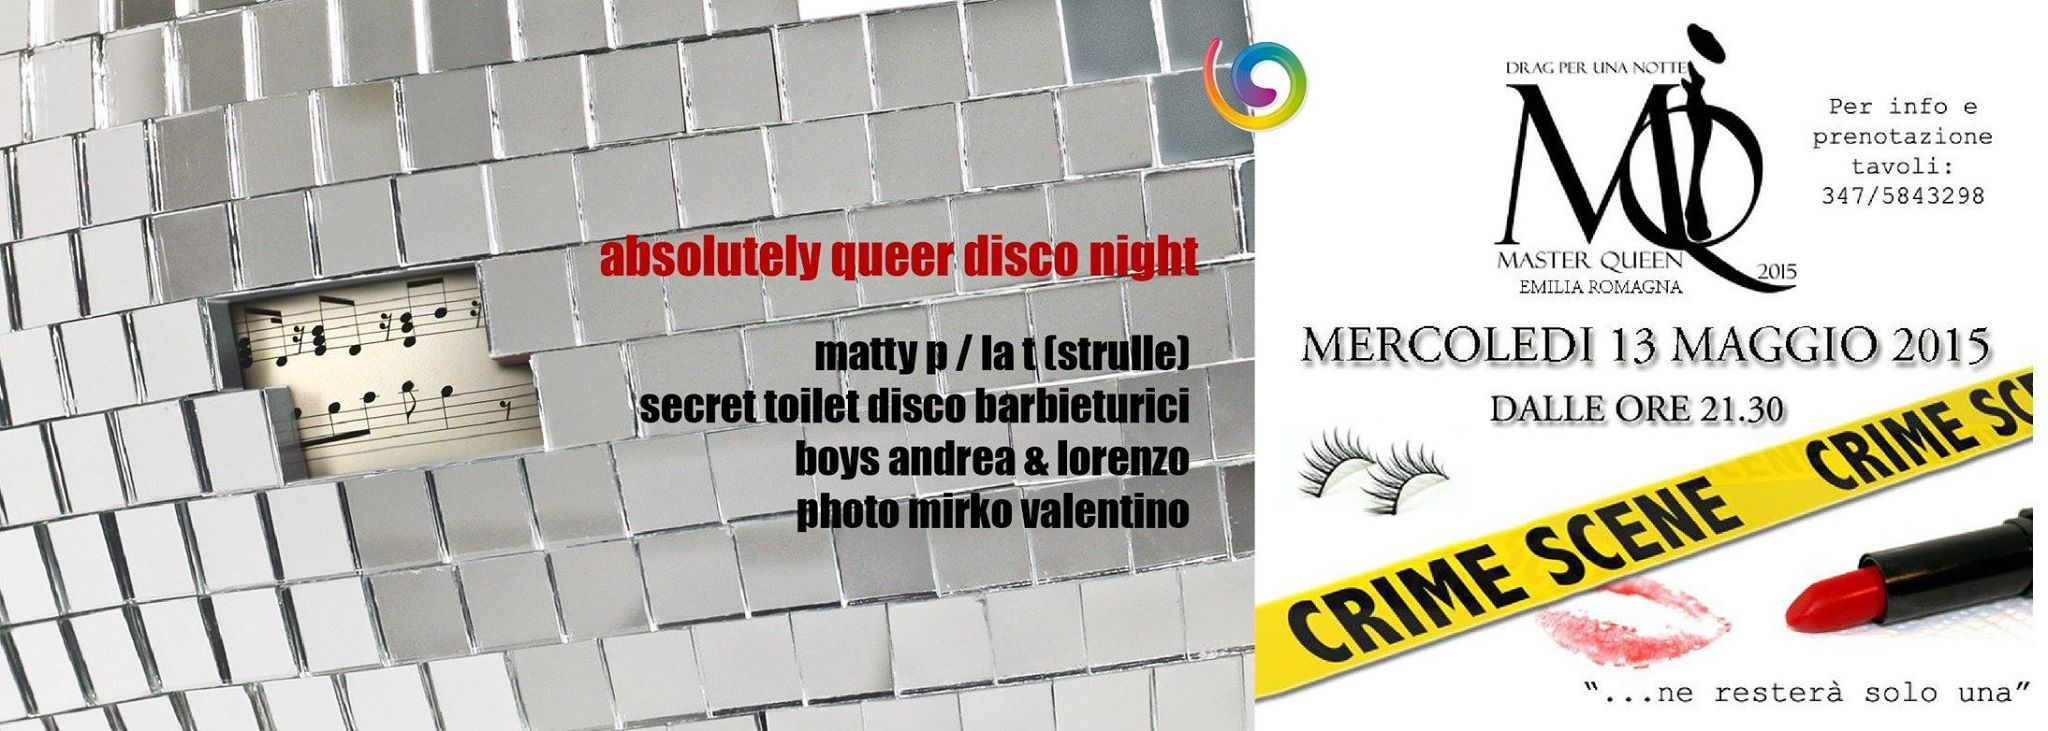 DRAG PER UNA NOTTE & ABSOLUTELY QUEER DISCO NIGHT